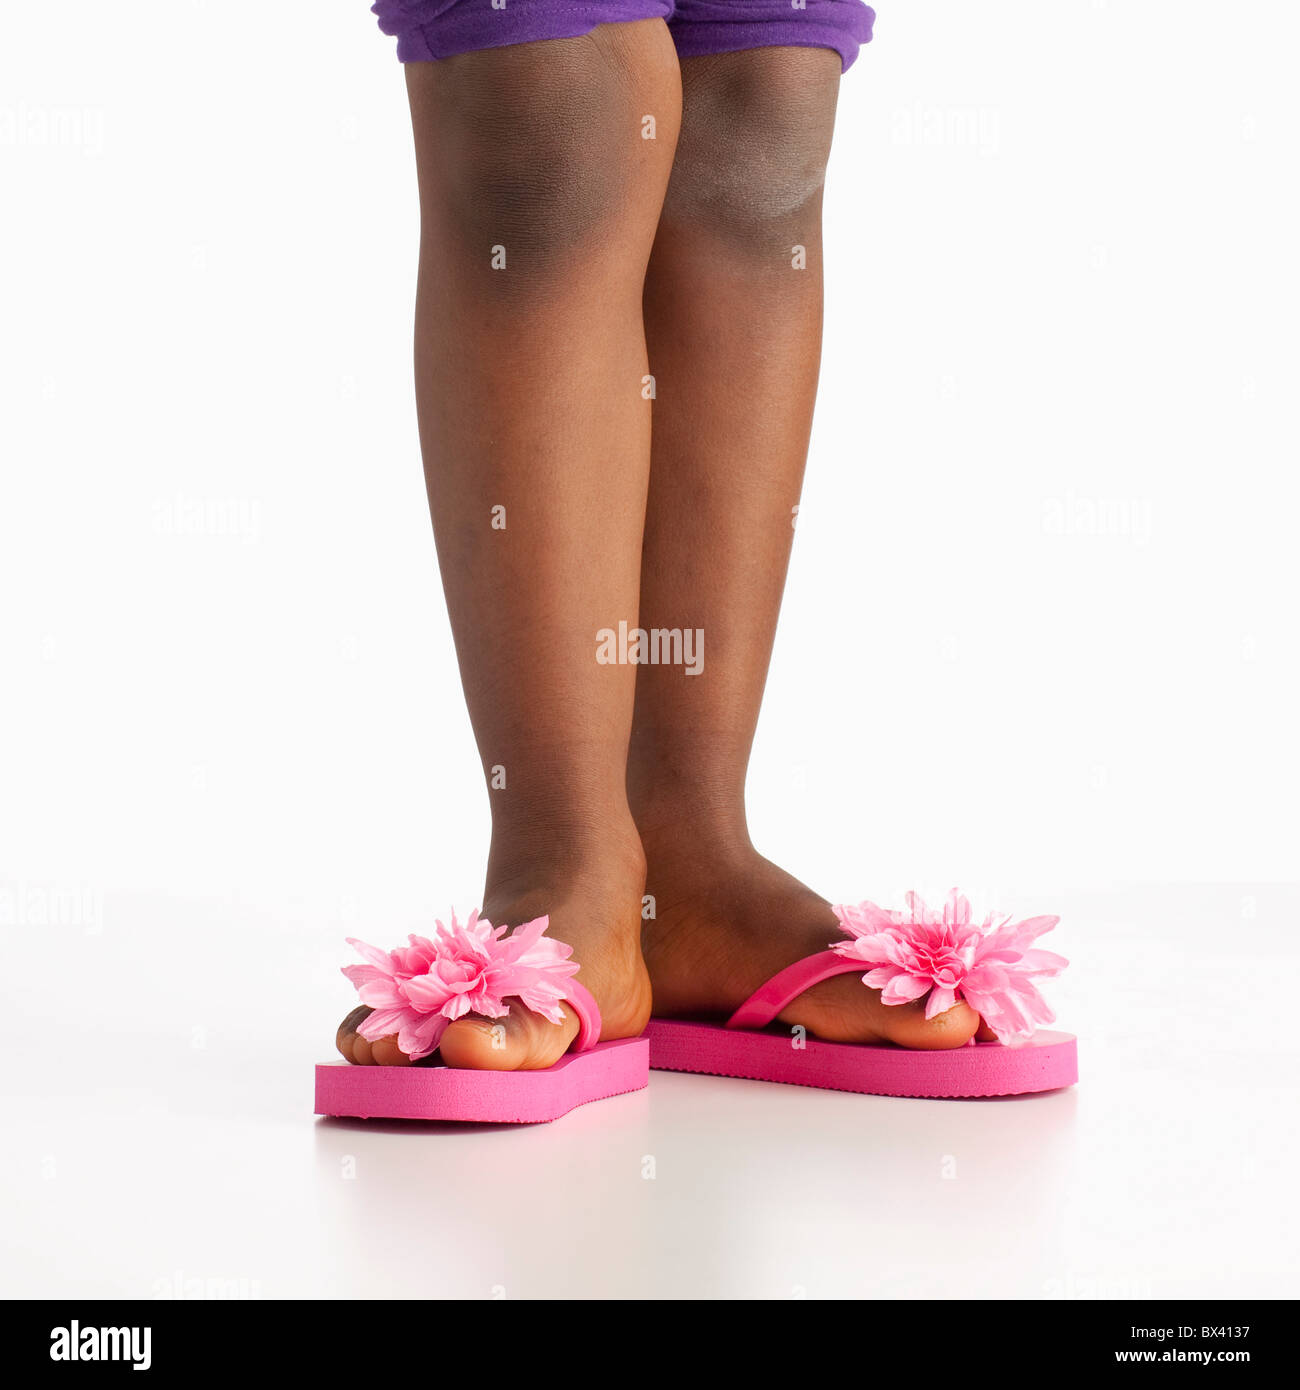 A Girl Wearing Flip Flops With Pink Flowers Stock Photo 33280107